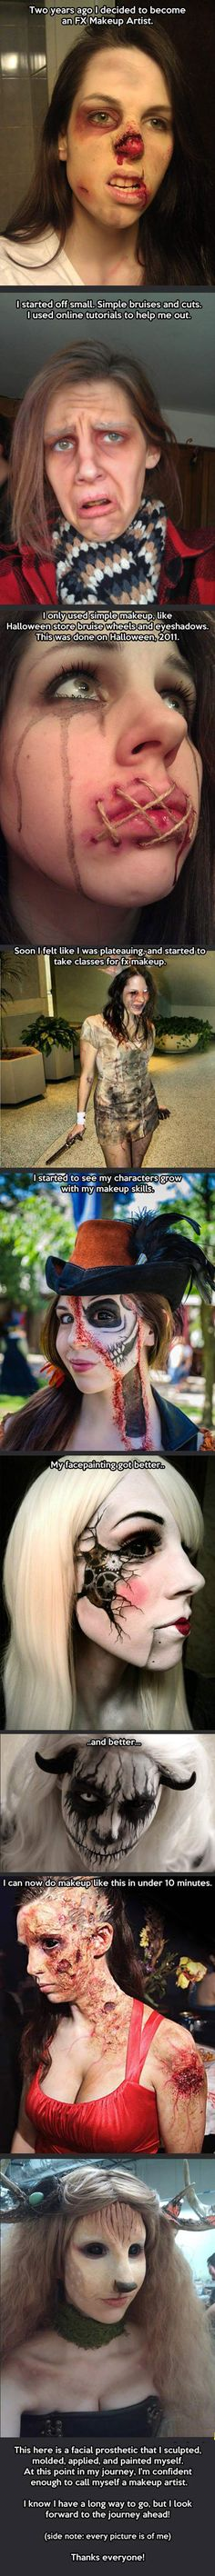 I give this girl a huge round of applause. I've seen special effects makeup put on and it's NOT easy. Props to her. Cosplay Makeup, Sfx Makeup, Costume Makeup, Makeup Fail, Prosthetic Makeup, Zombie Makeup, Halloween Cosplay, Halloween Make Up, Halloween Costumes